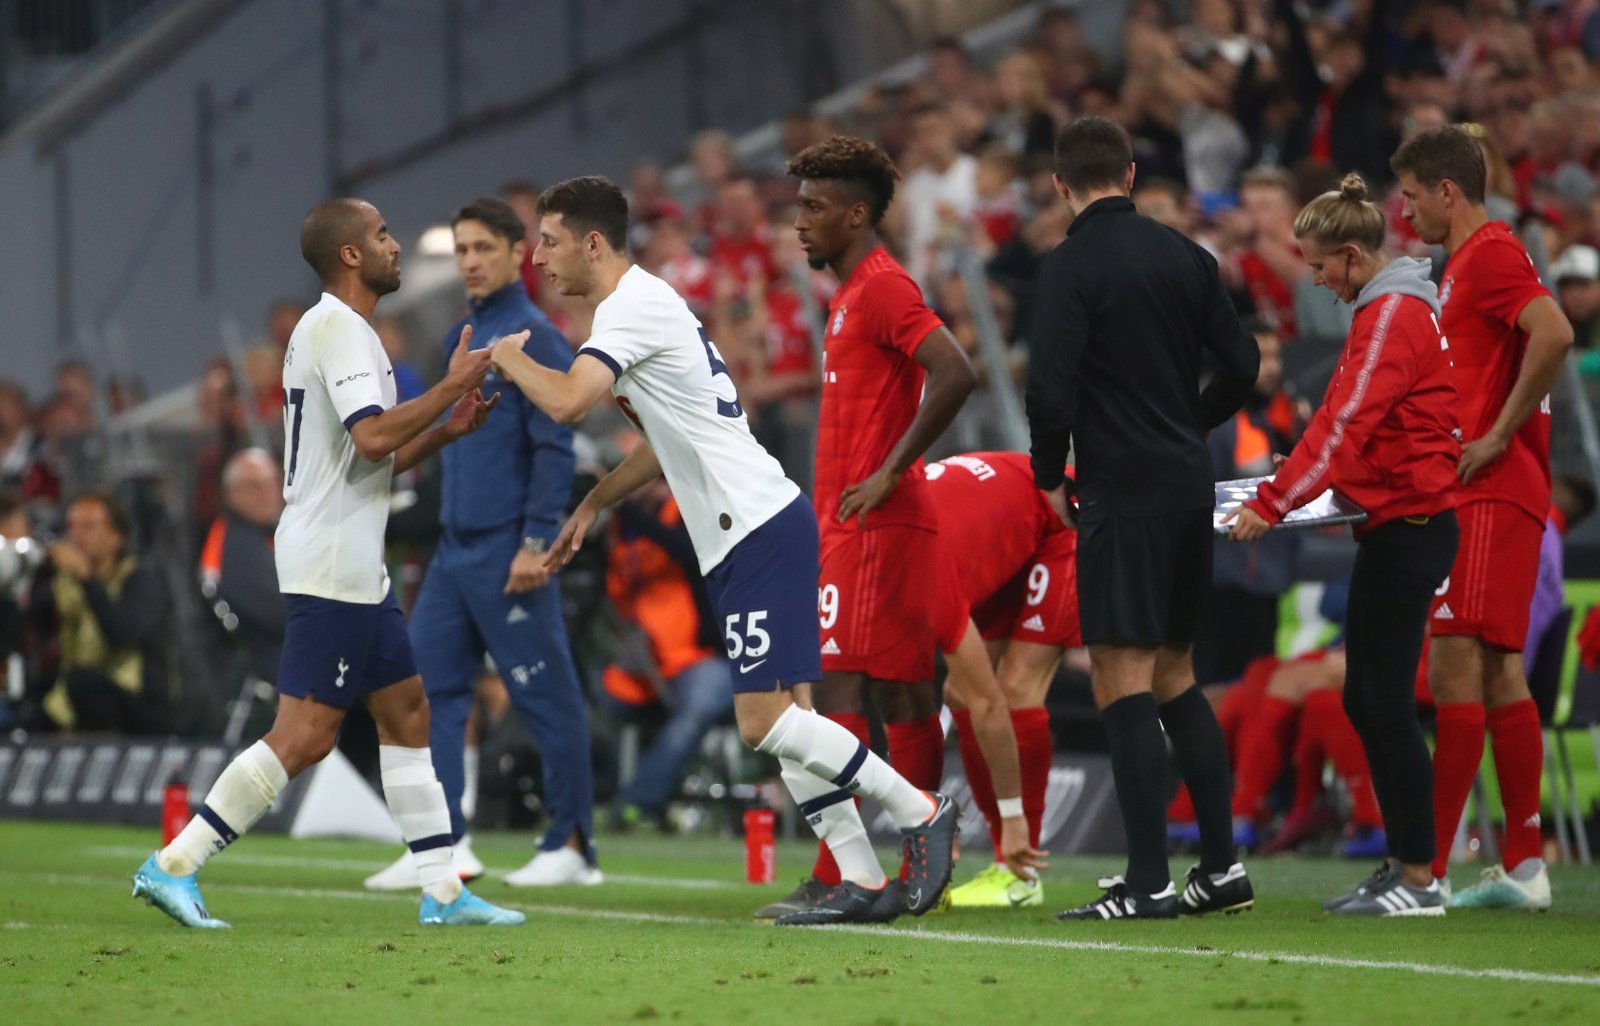 Tottenham's Jack Roles comes on as a substitute to replace Lucas Moura, Audi Cup v Bayern Munich, July 2019